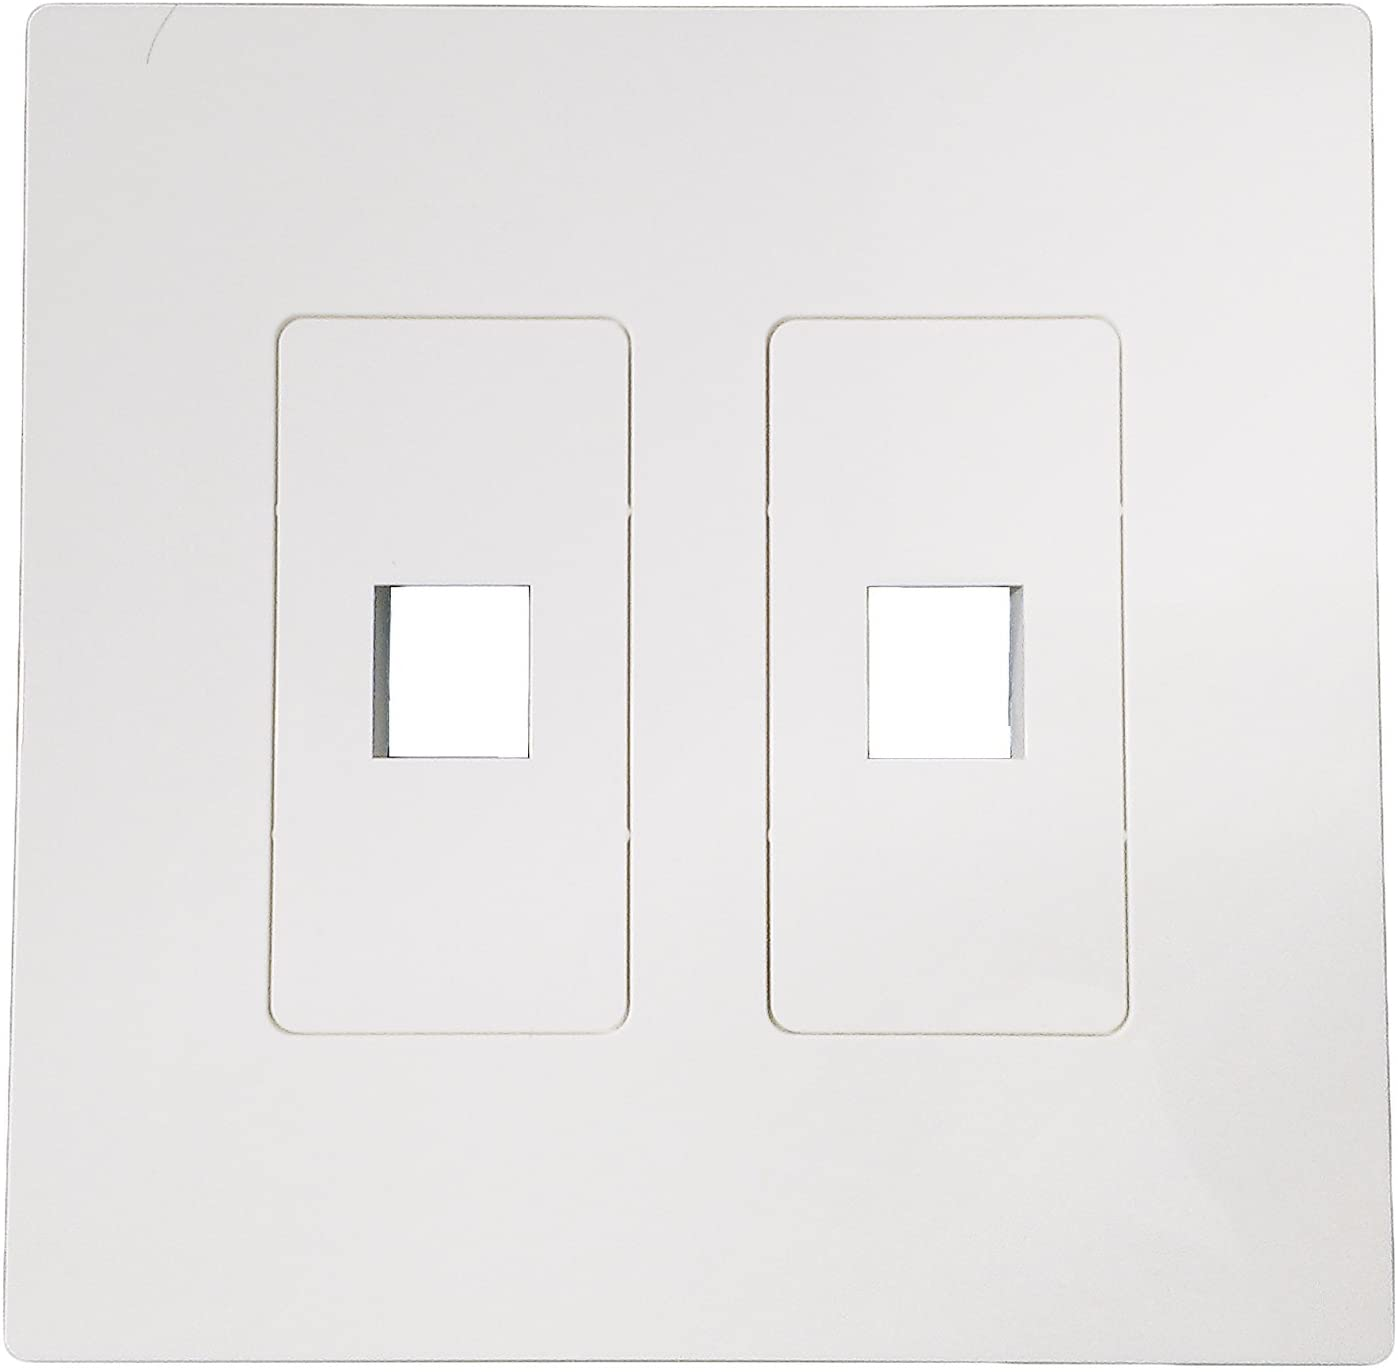 R.J. Enterprises Screwless Snap-on Wallplate 2-Gang 2 Port RJ-2103B-S2